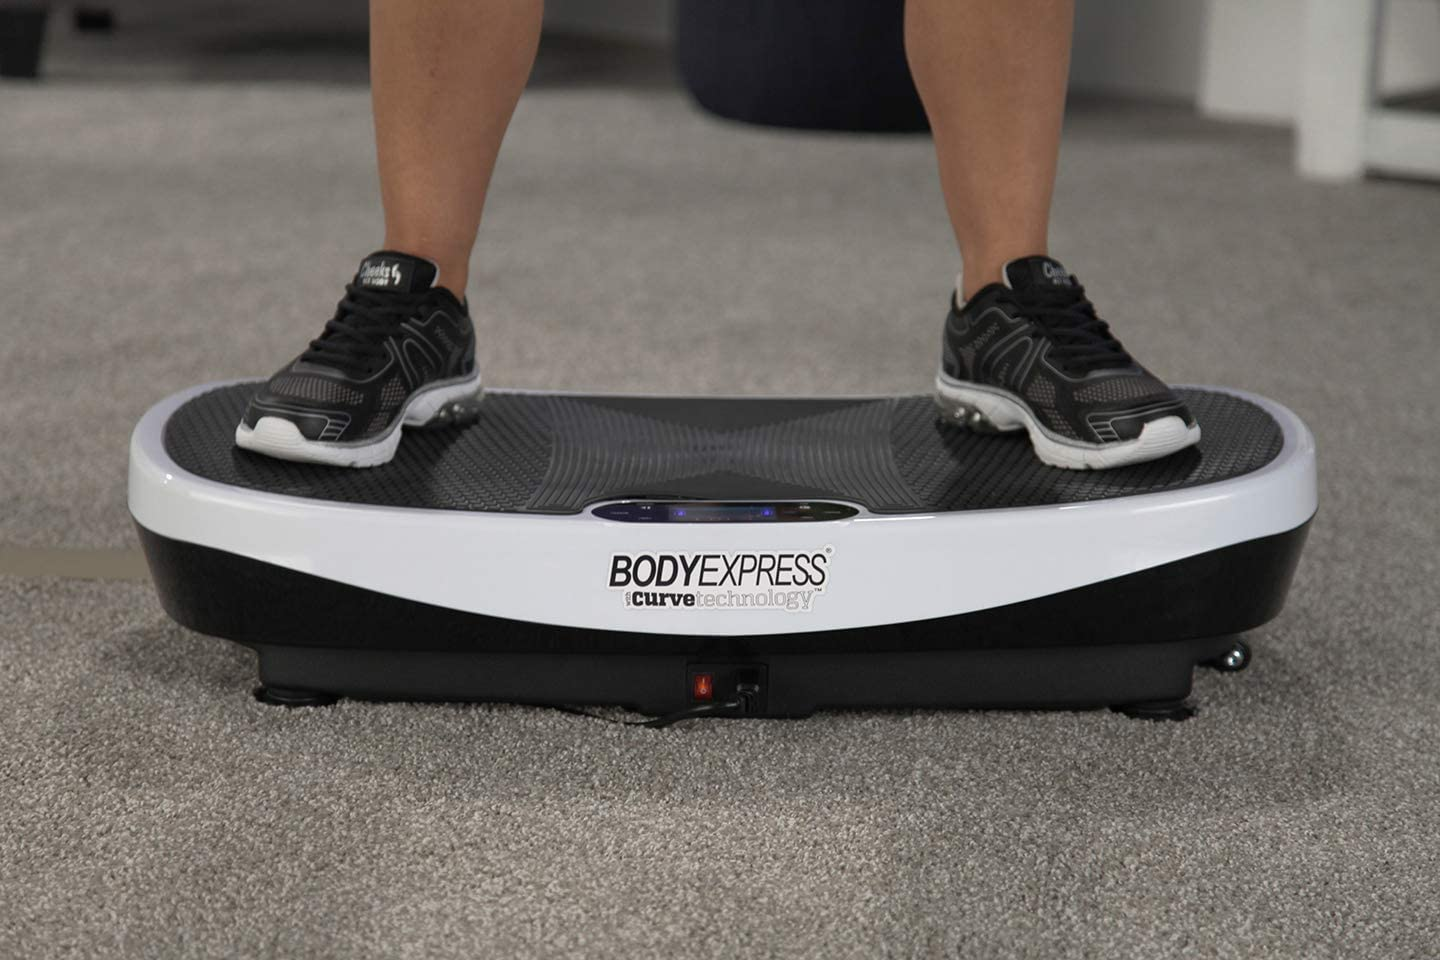 BODY EXPRESS Vibration Machine